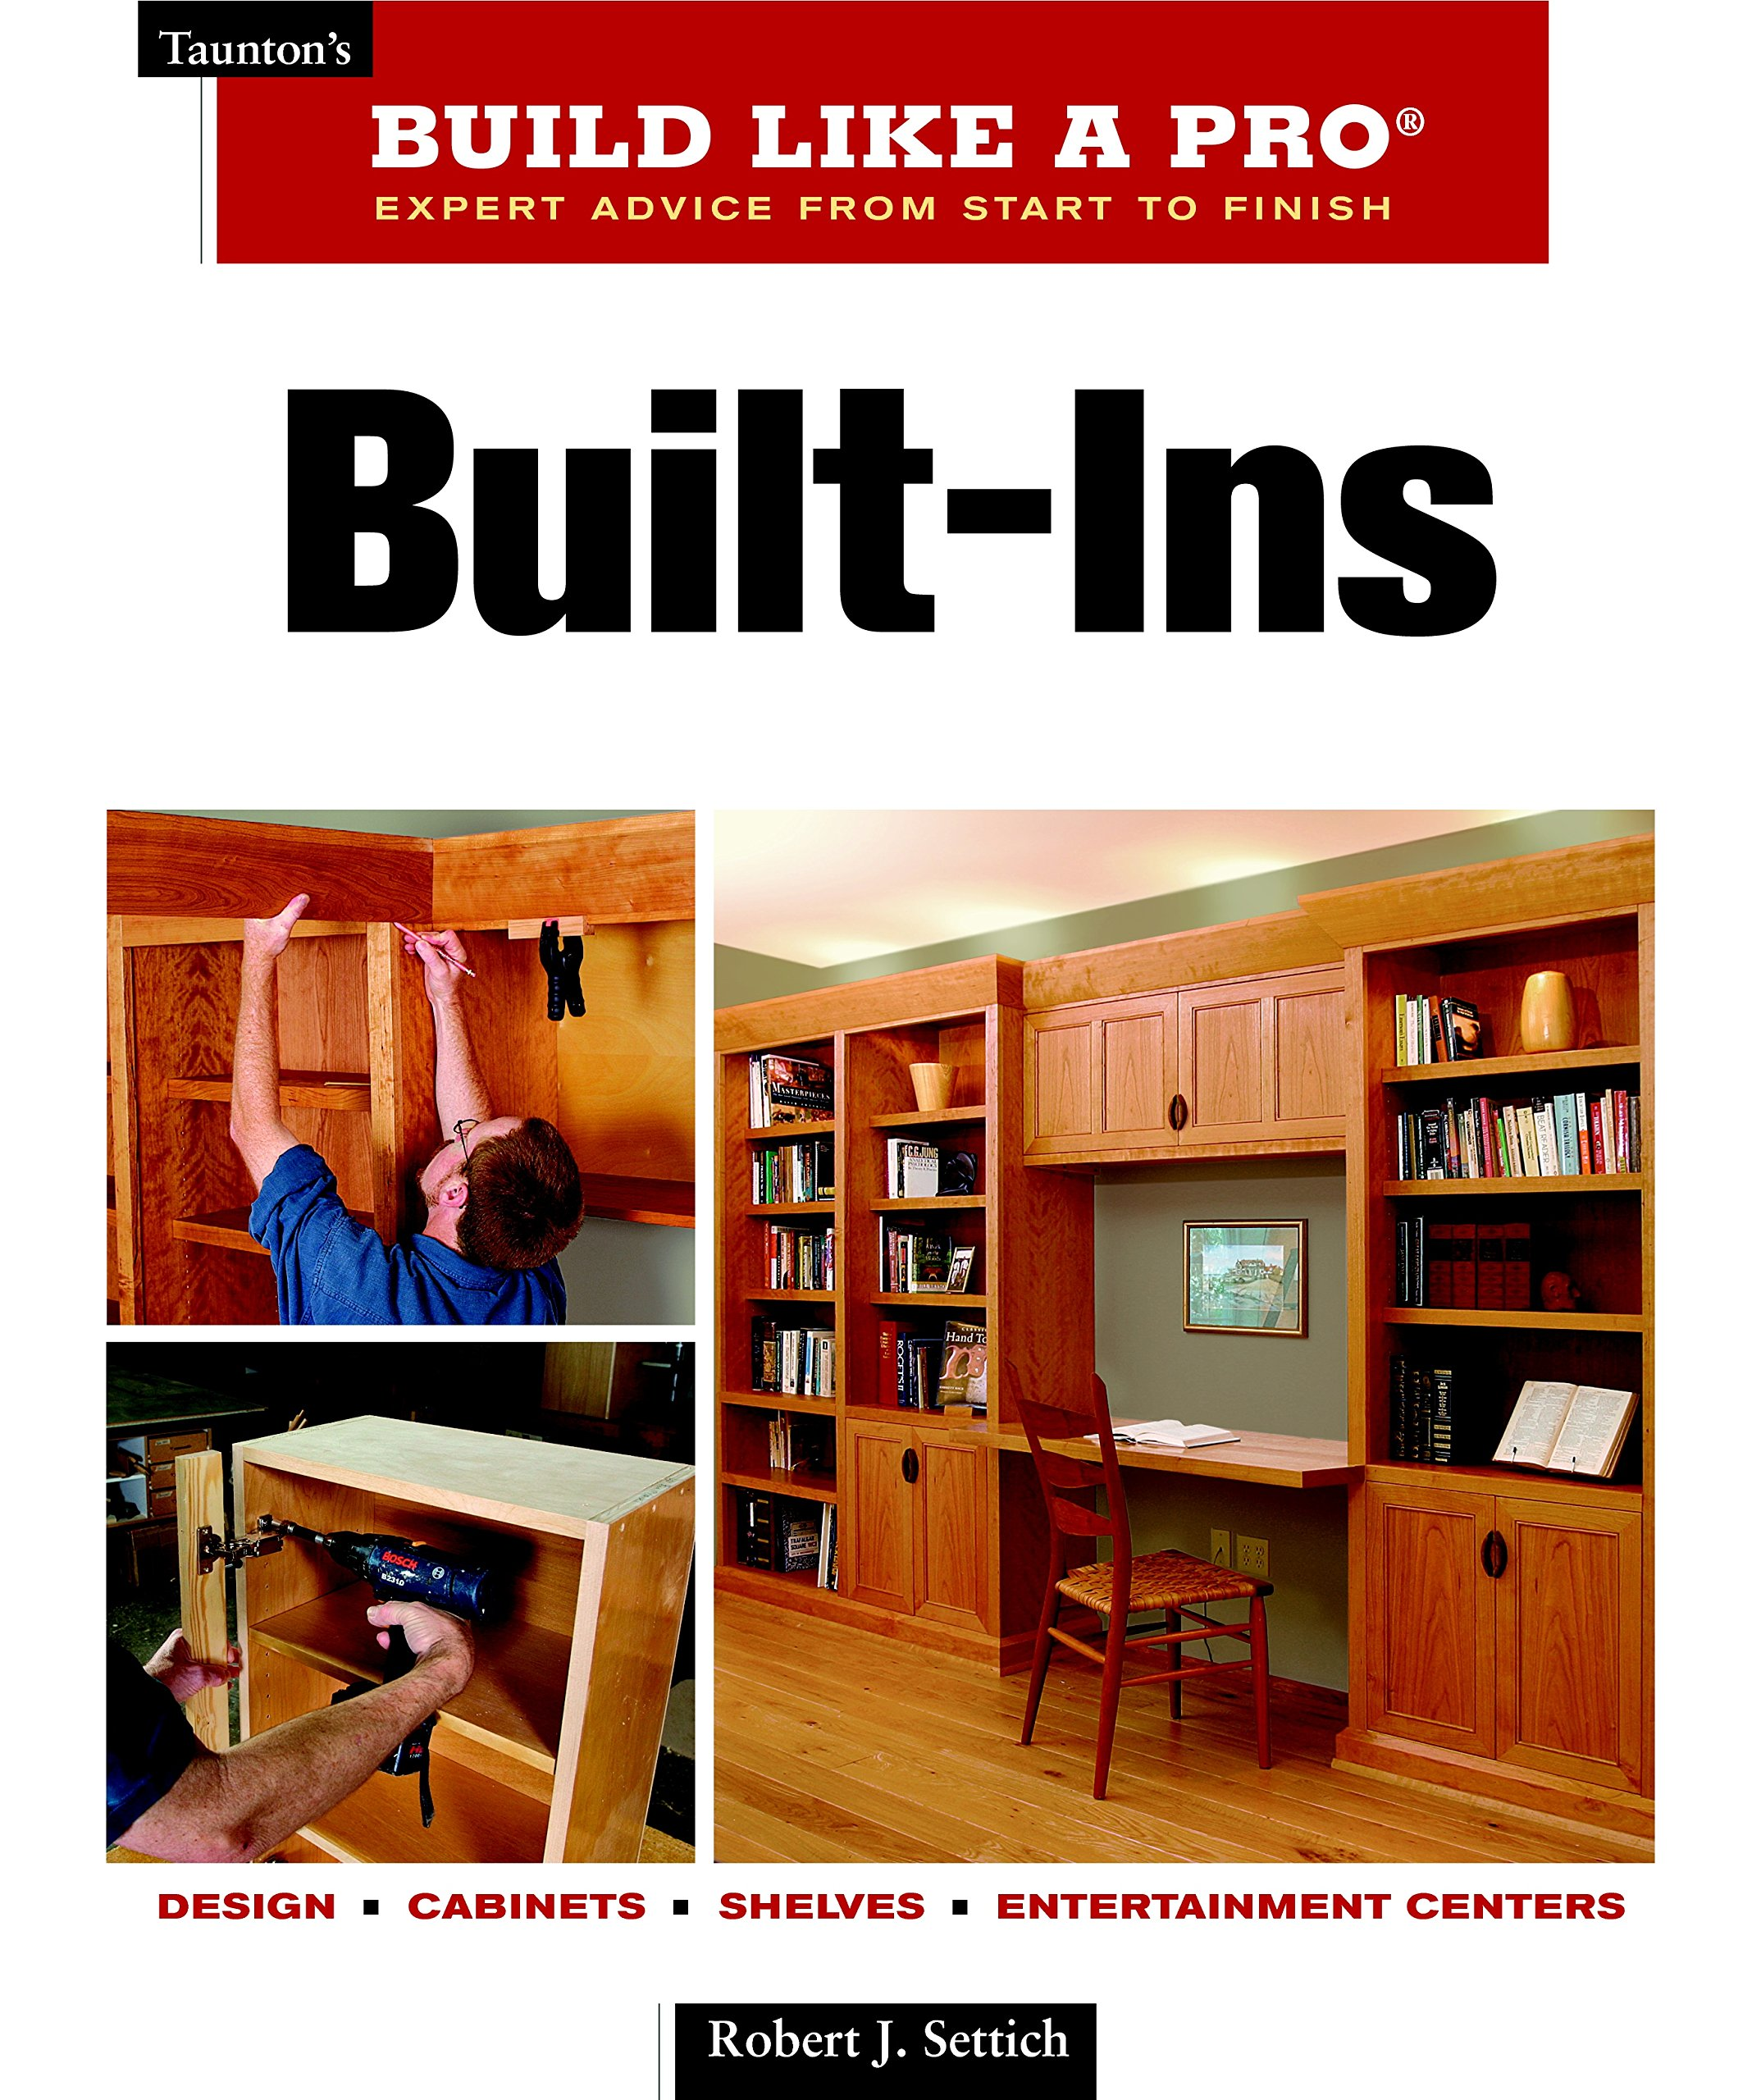 Built-Ins: Expert Advice from Start to Finish (Taunton's Build Like a Pro) pdf